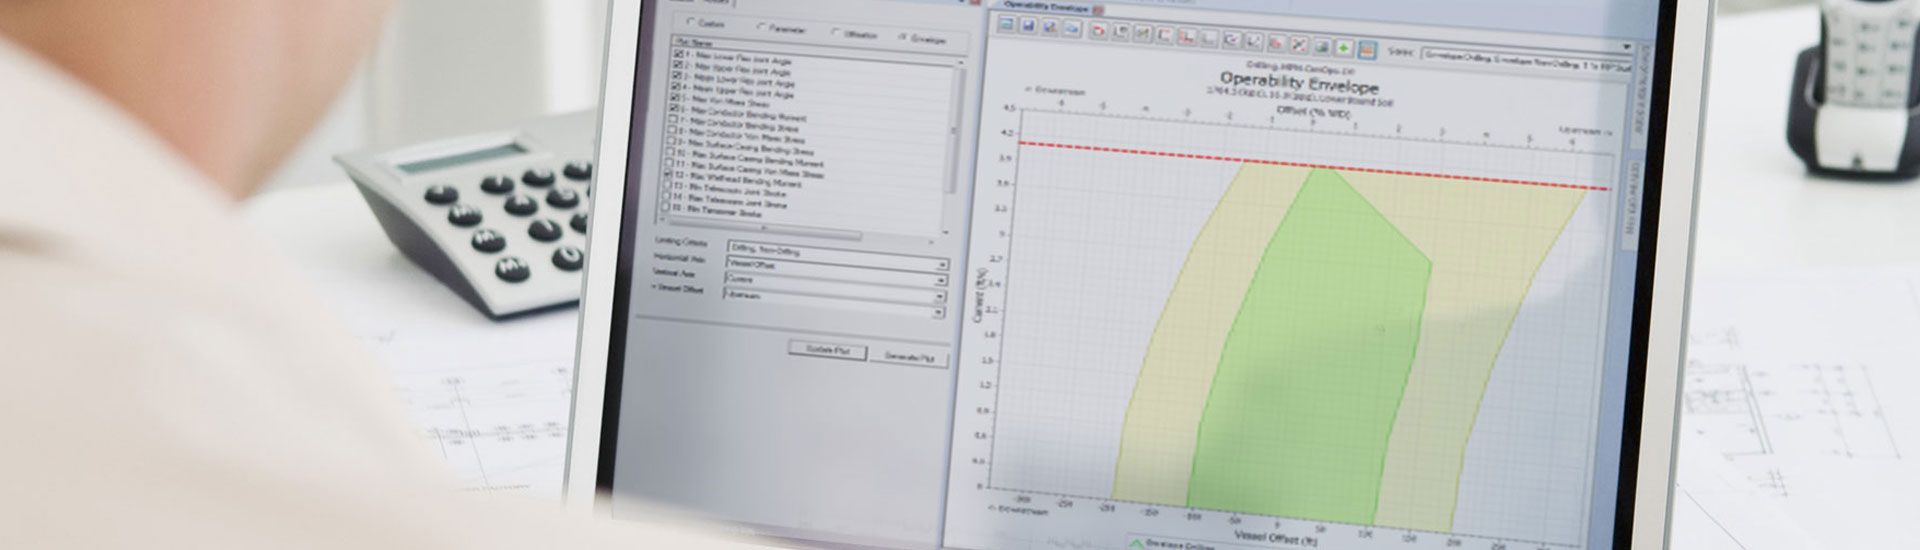 OptiView - riser analysis data as a deliverable